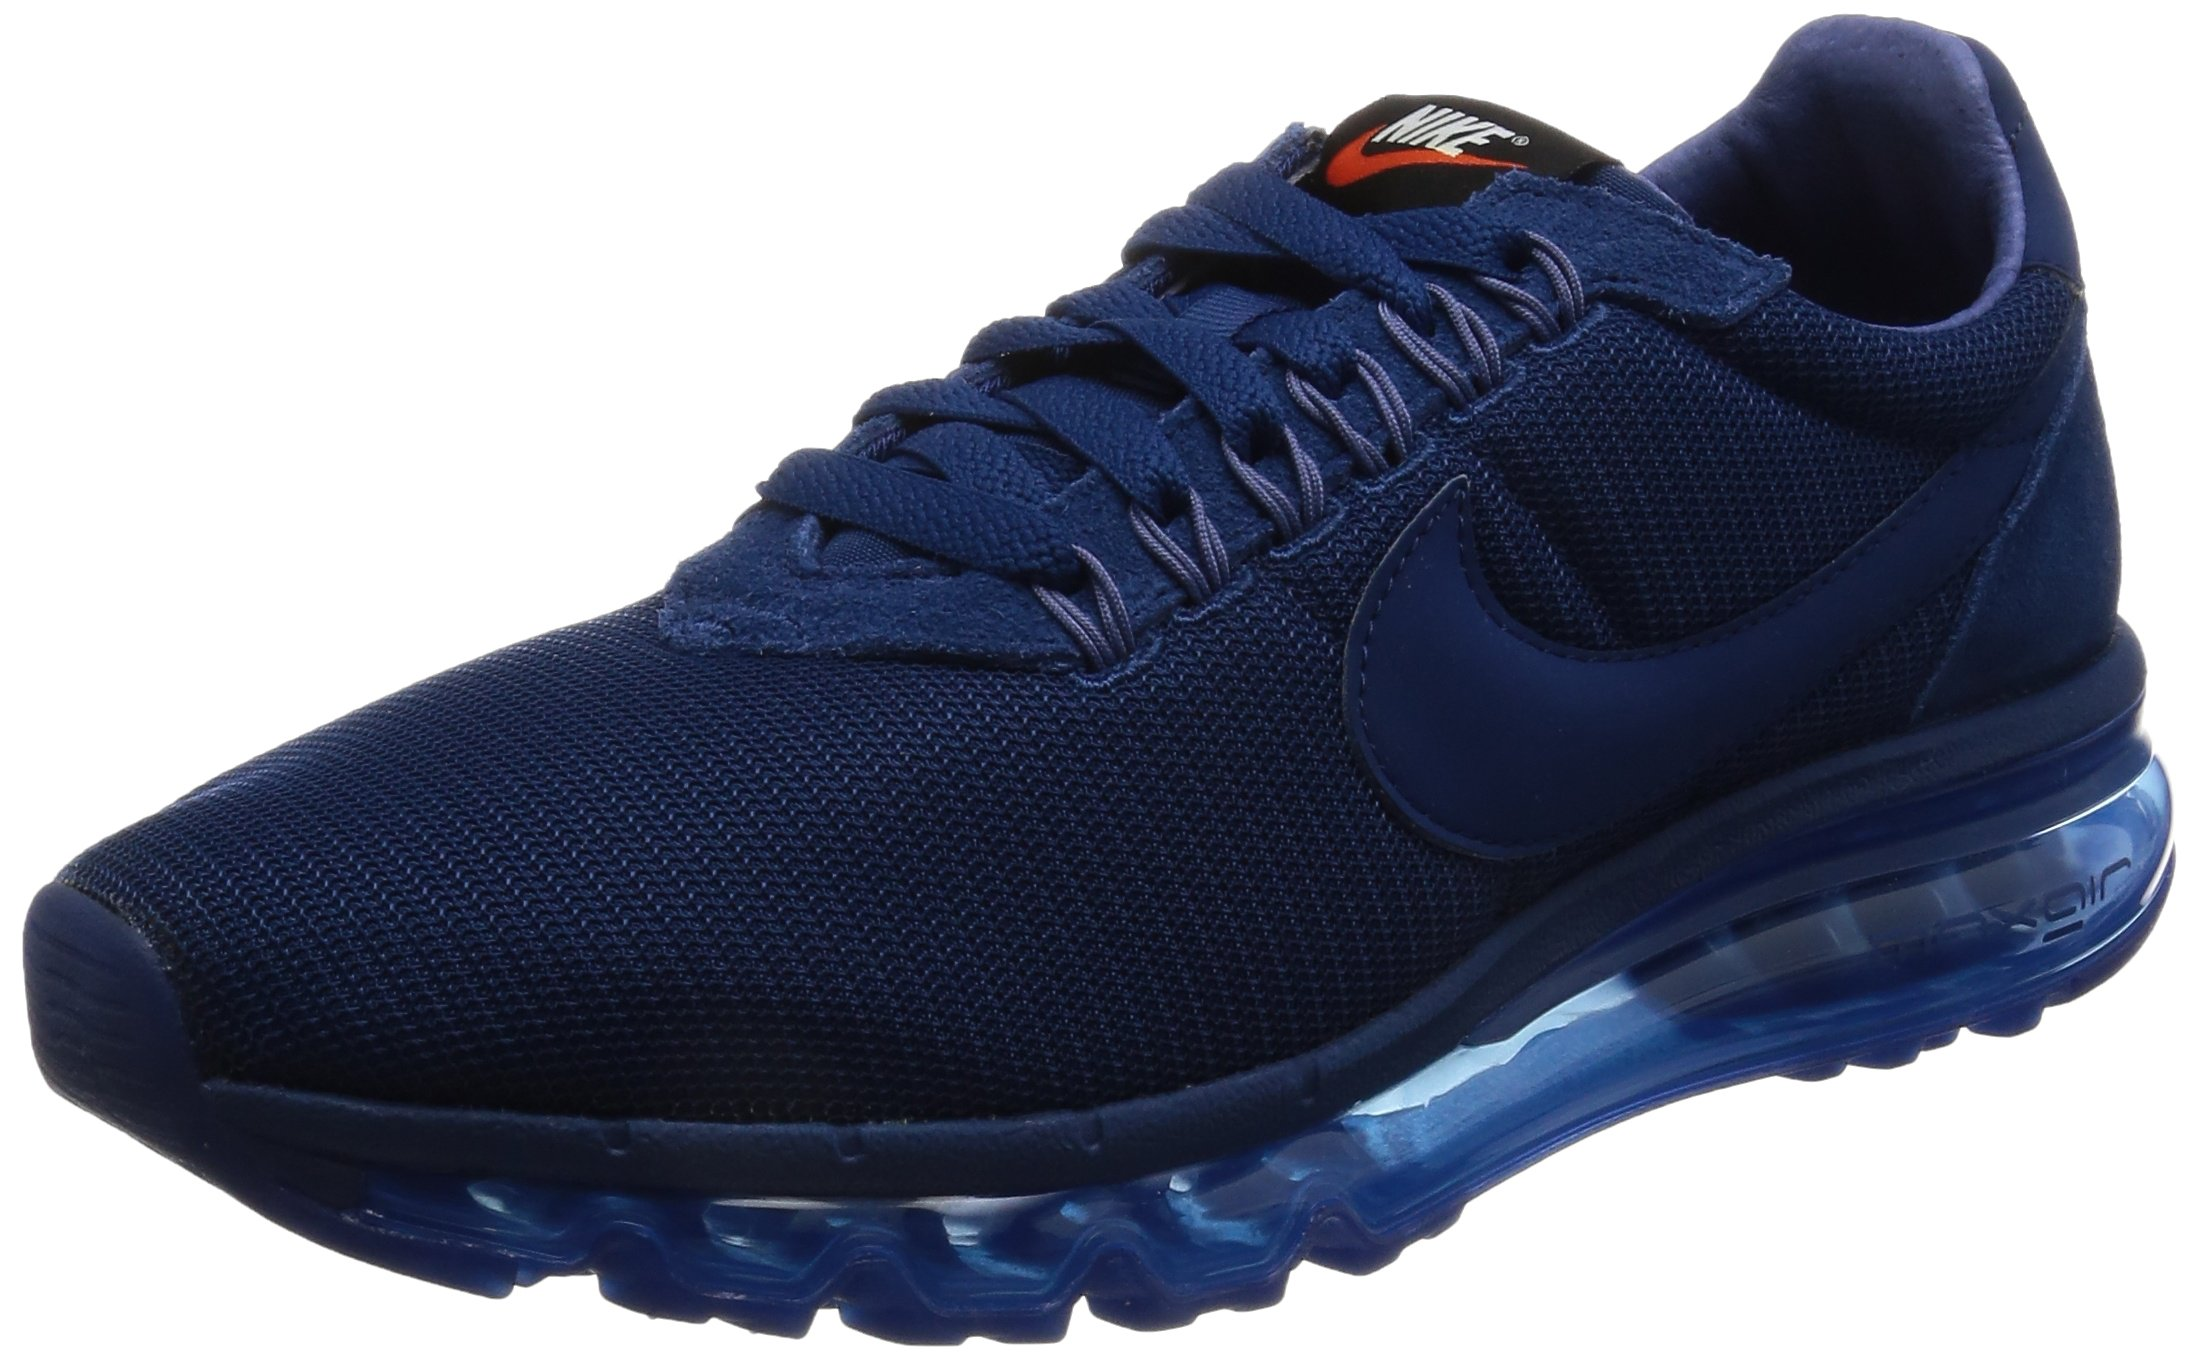 7b0315a6dd2a Galleon - NIKE Air Max LD-Zero Mens Running Trainers 848624 Sneakers Shoes  (UK 6.5 US 7.5 EU 40.5